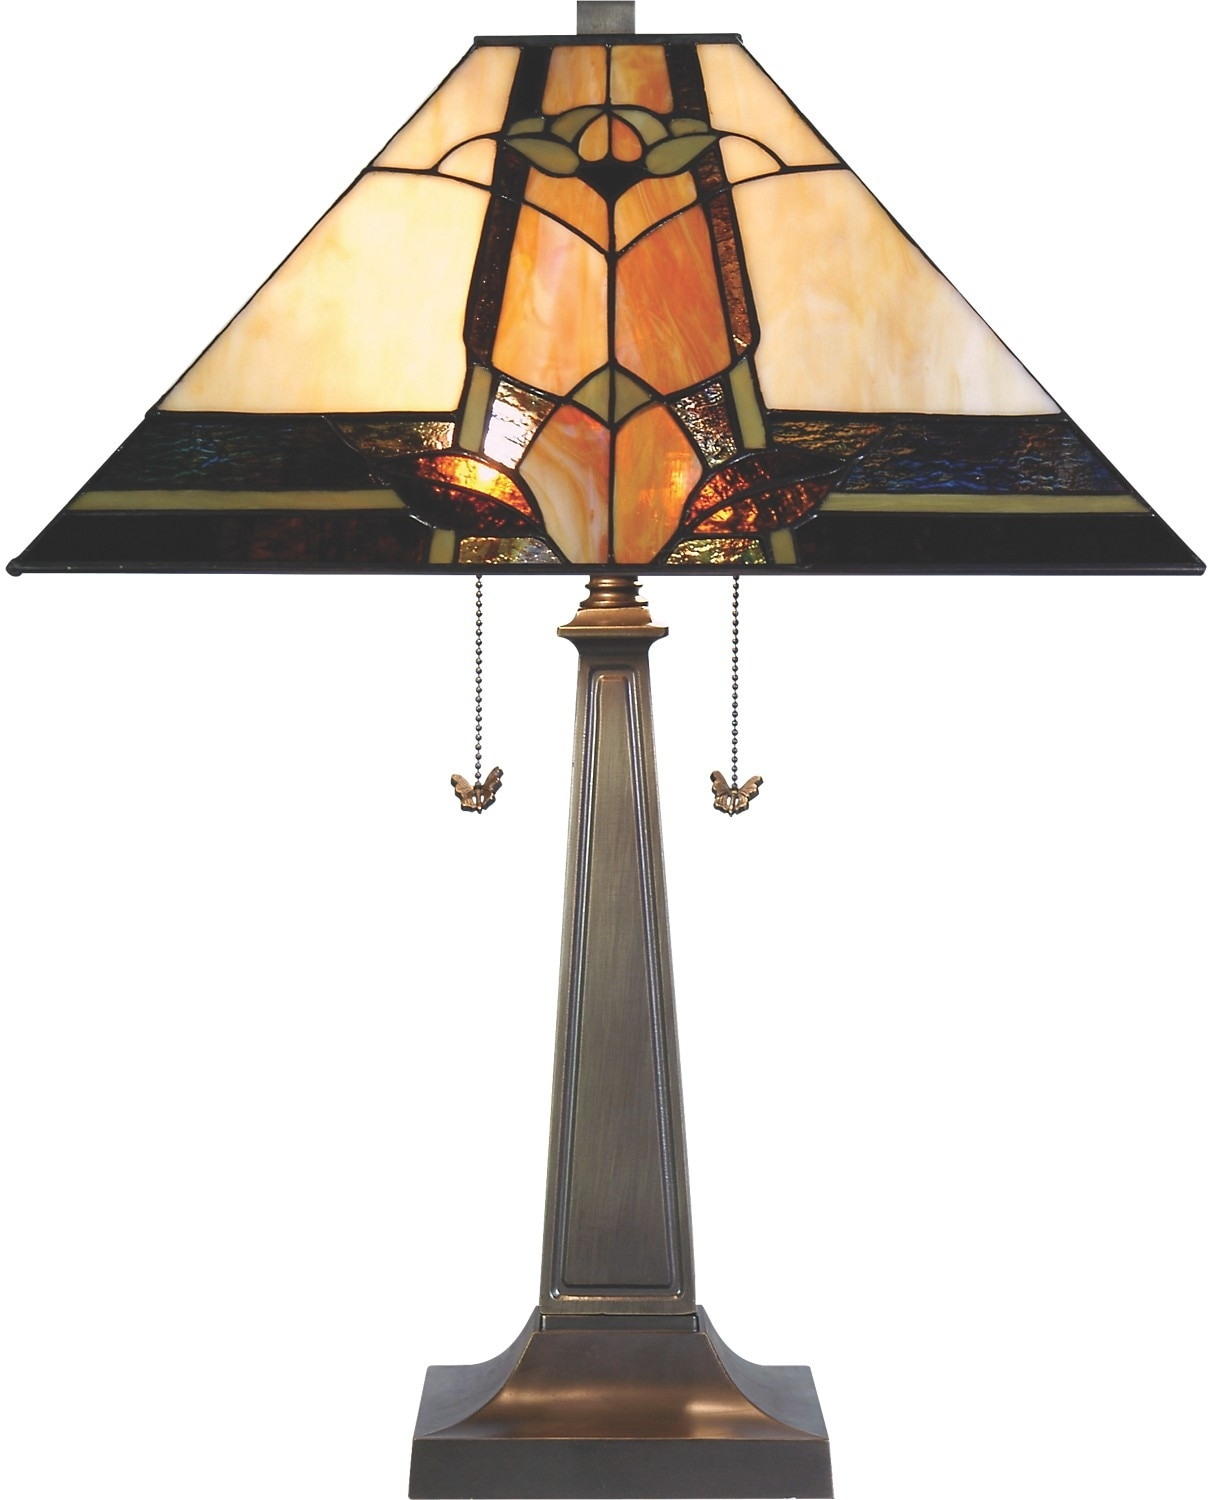 home accessories marlow table lamp with stained glass shade. Black Bedroom Furniture Sets. Home Design Ideas